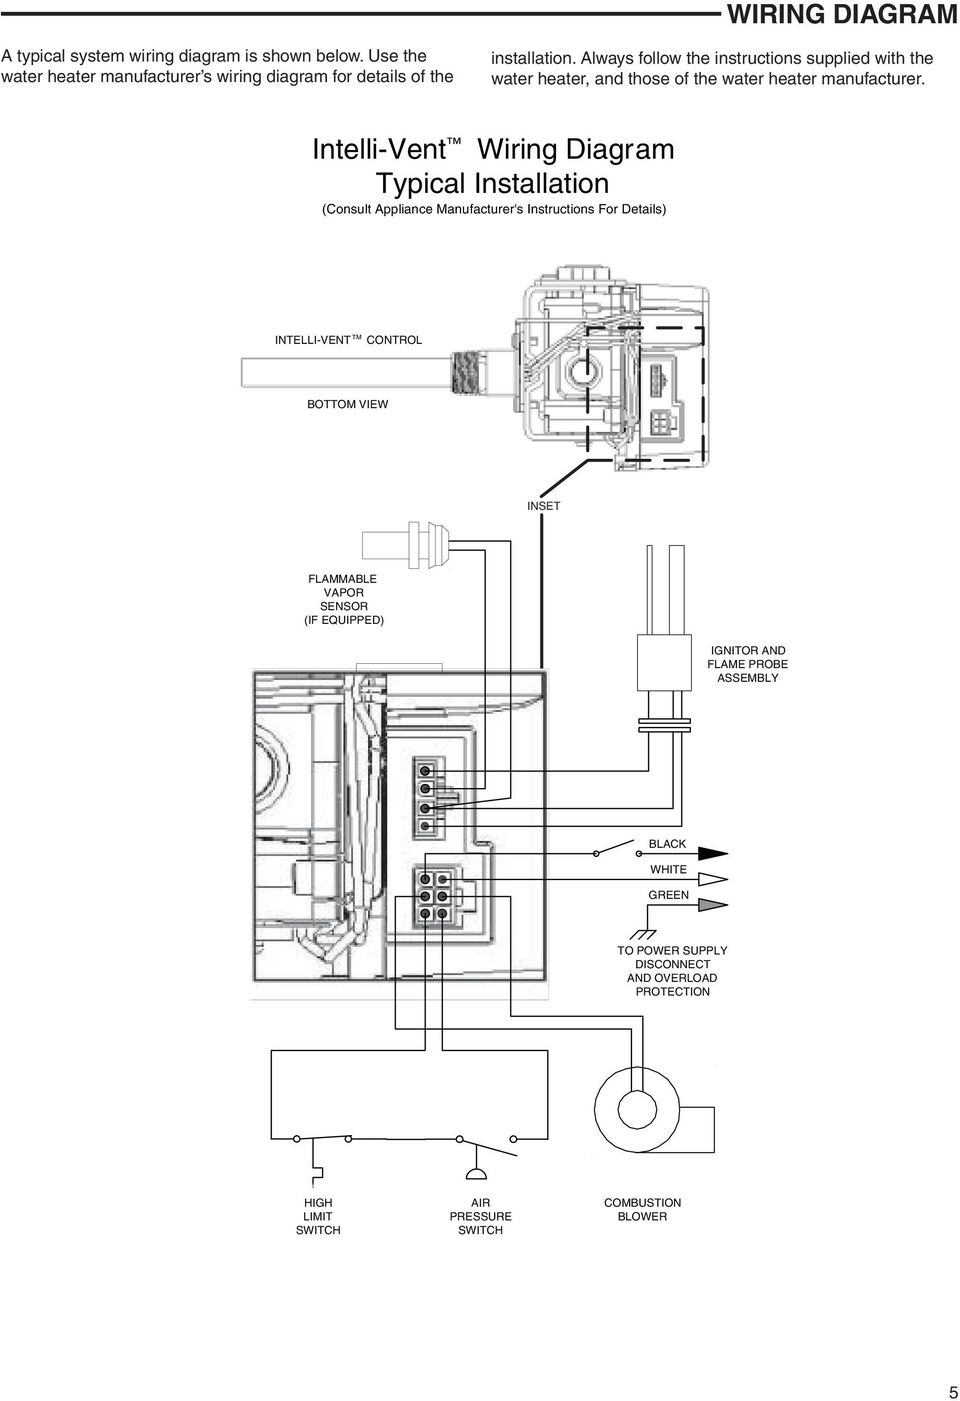 medium resolution of intelli vent wiring diagram typical installation consult appliance manufacturer s instructions for details intelli